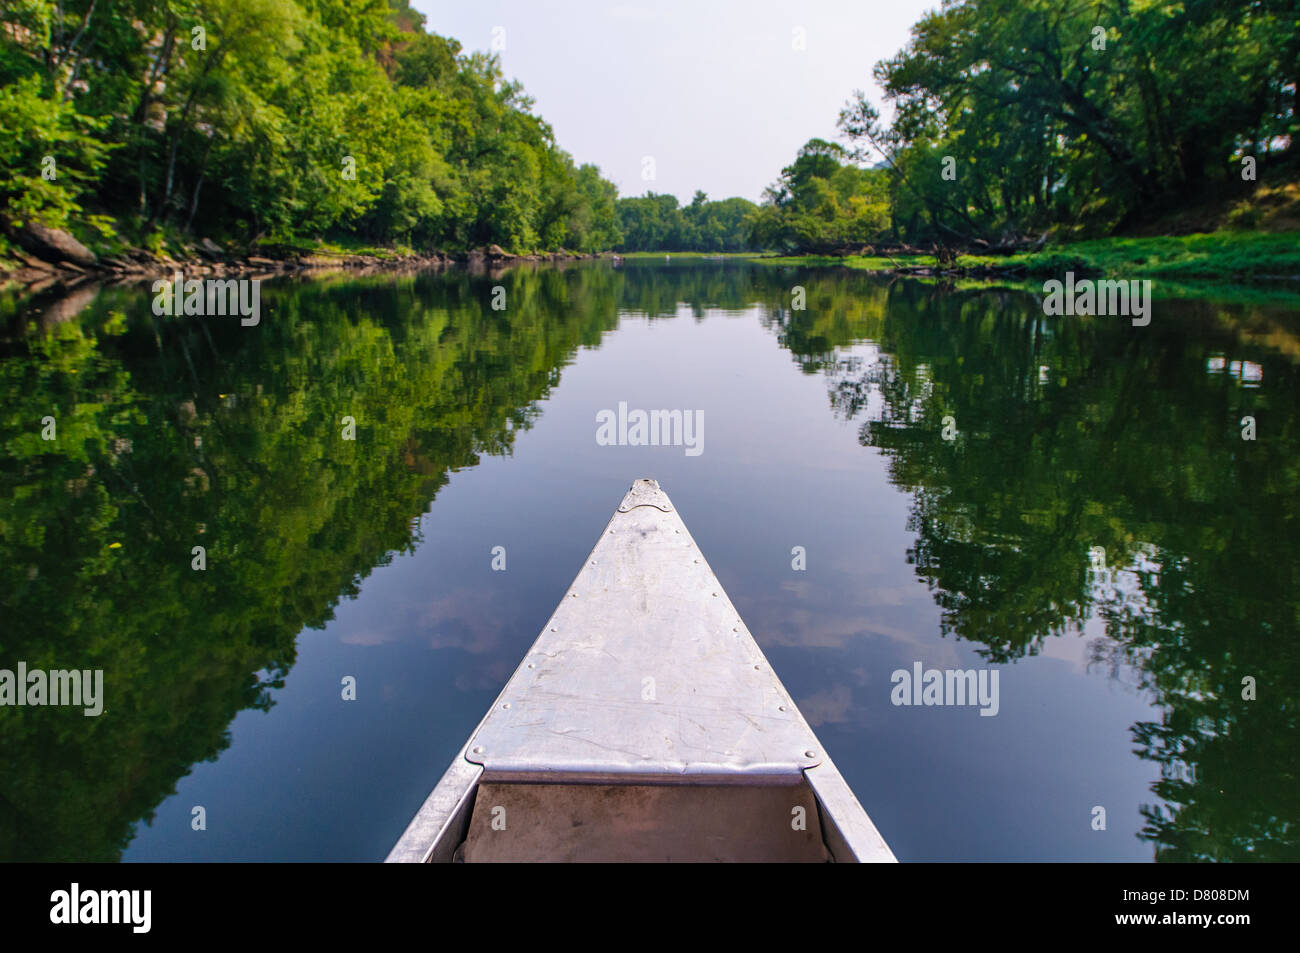 Canoing the Caney River in Tennessee. Just the tip of the canoe is visible in frame. - Stock Image